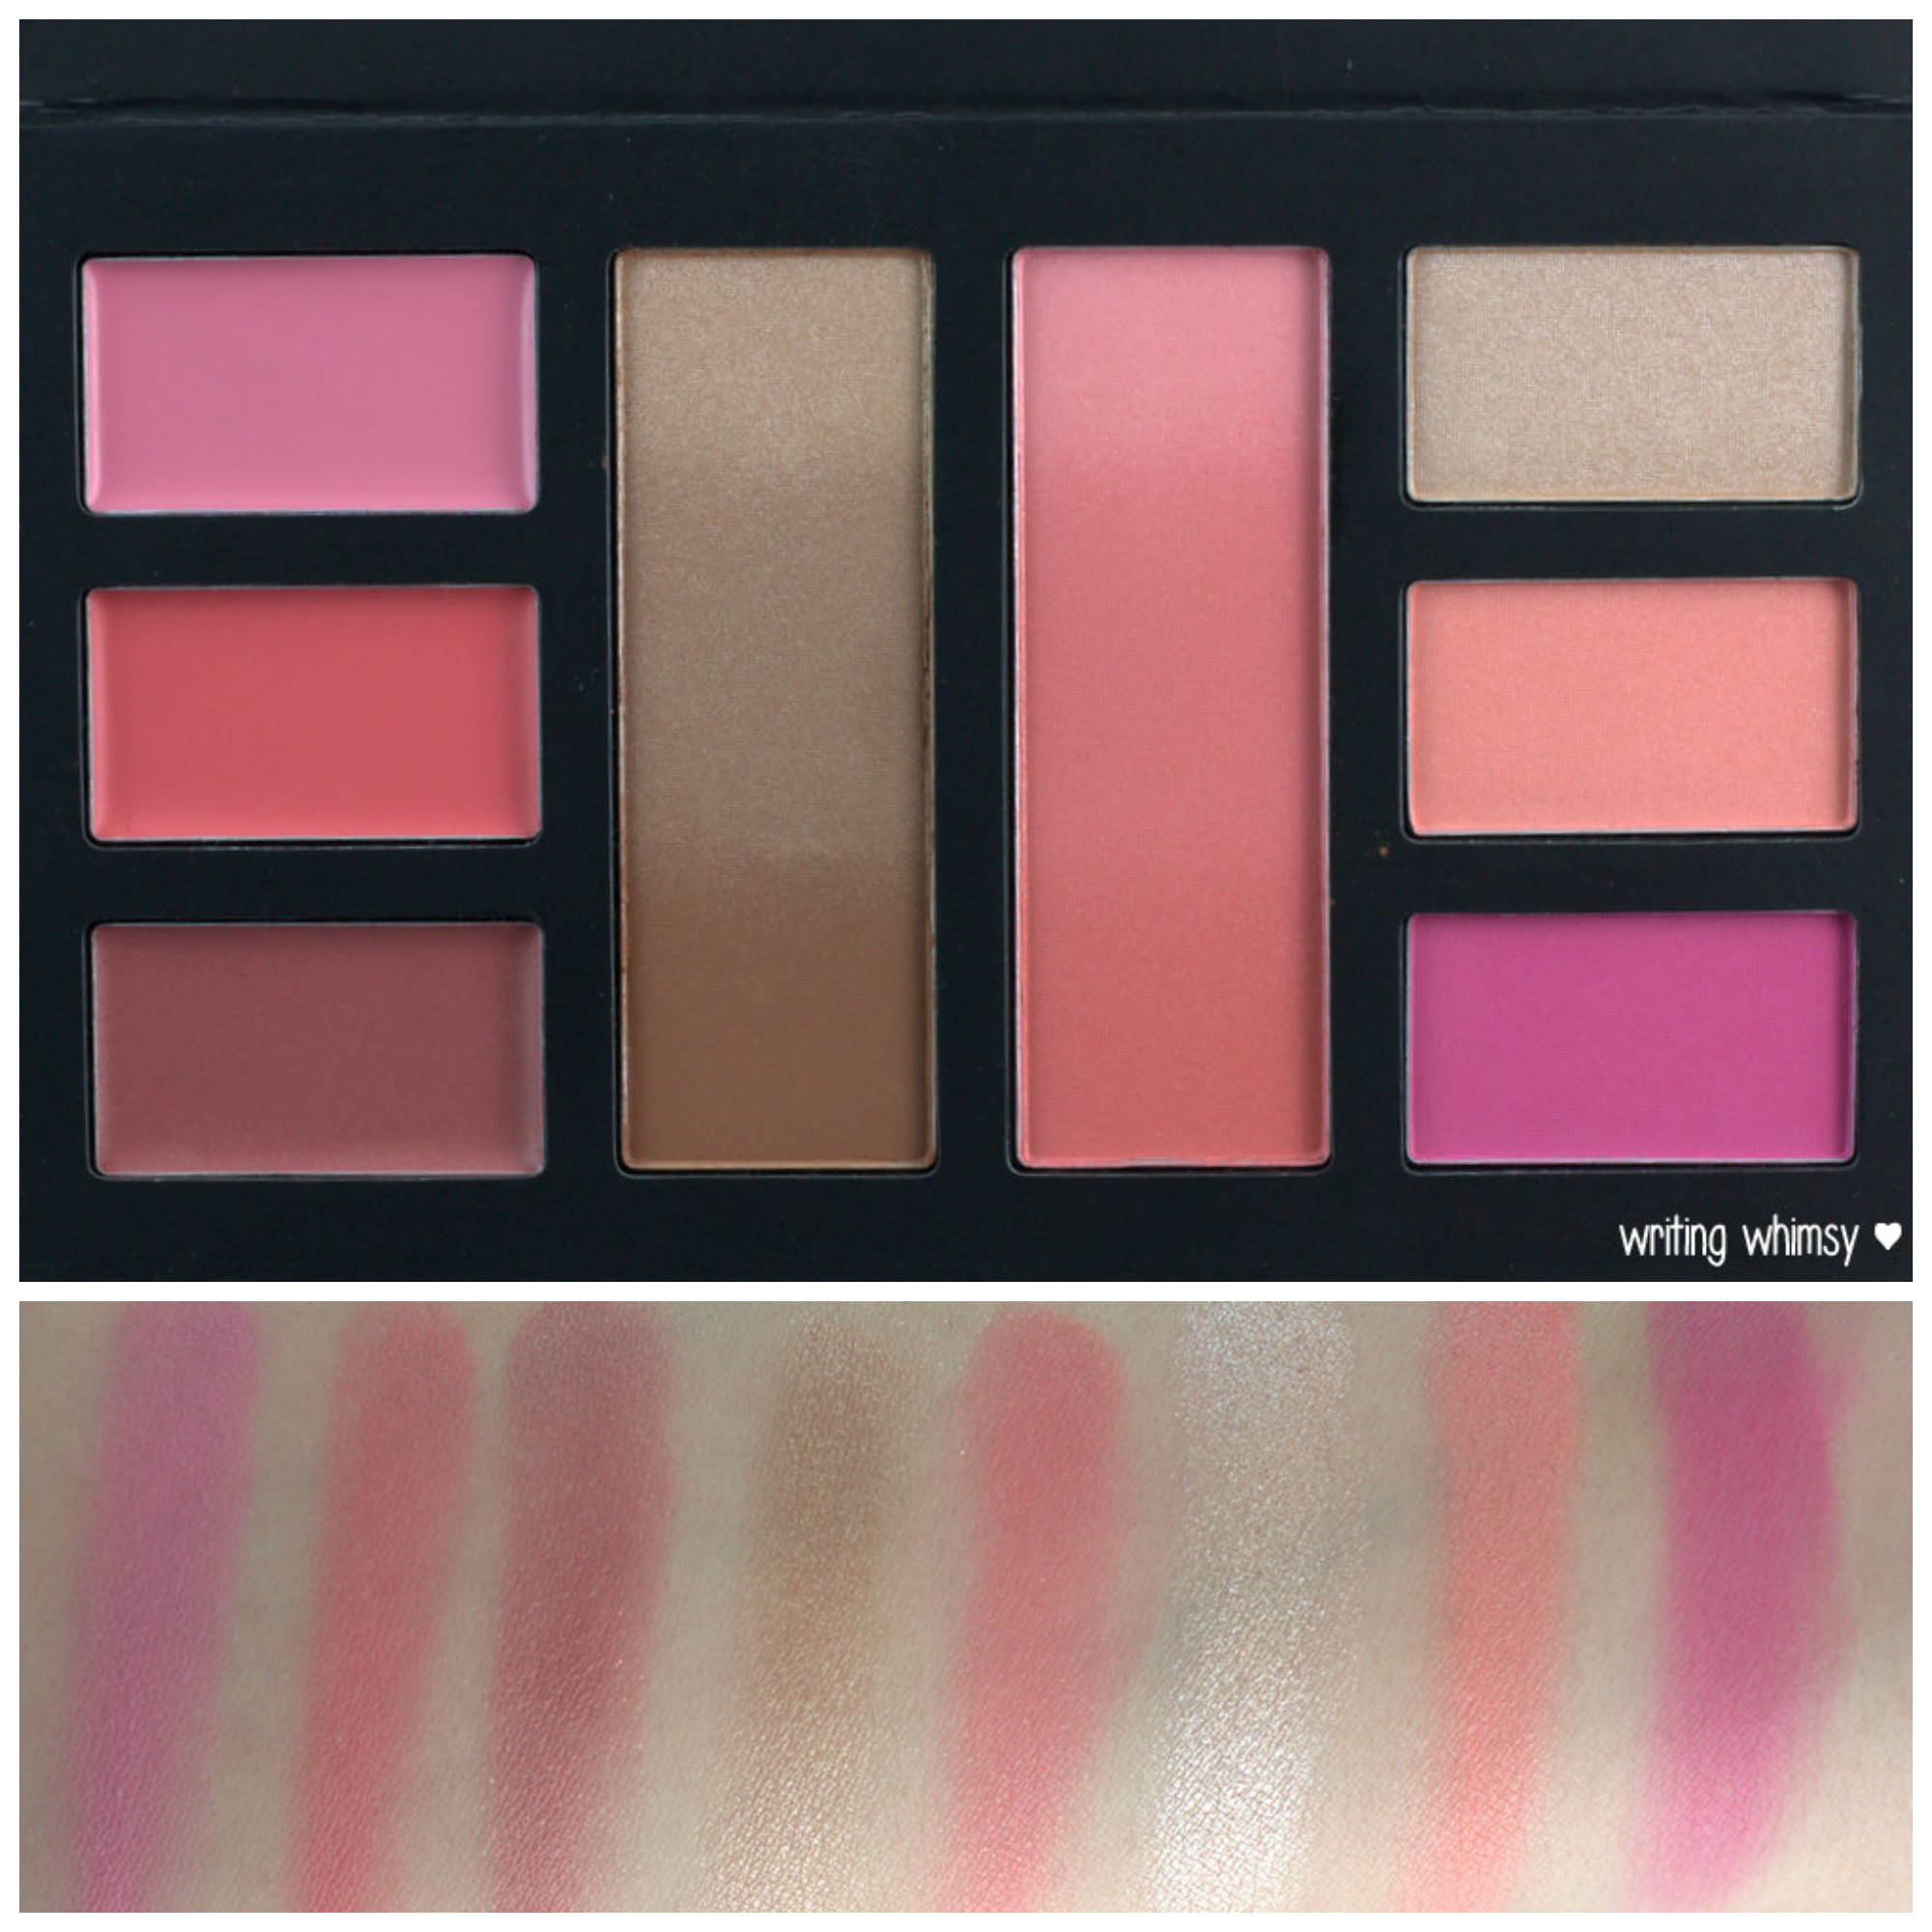 Sephora The Beauty of Giving Back Face Palette Collage